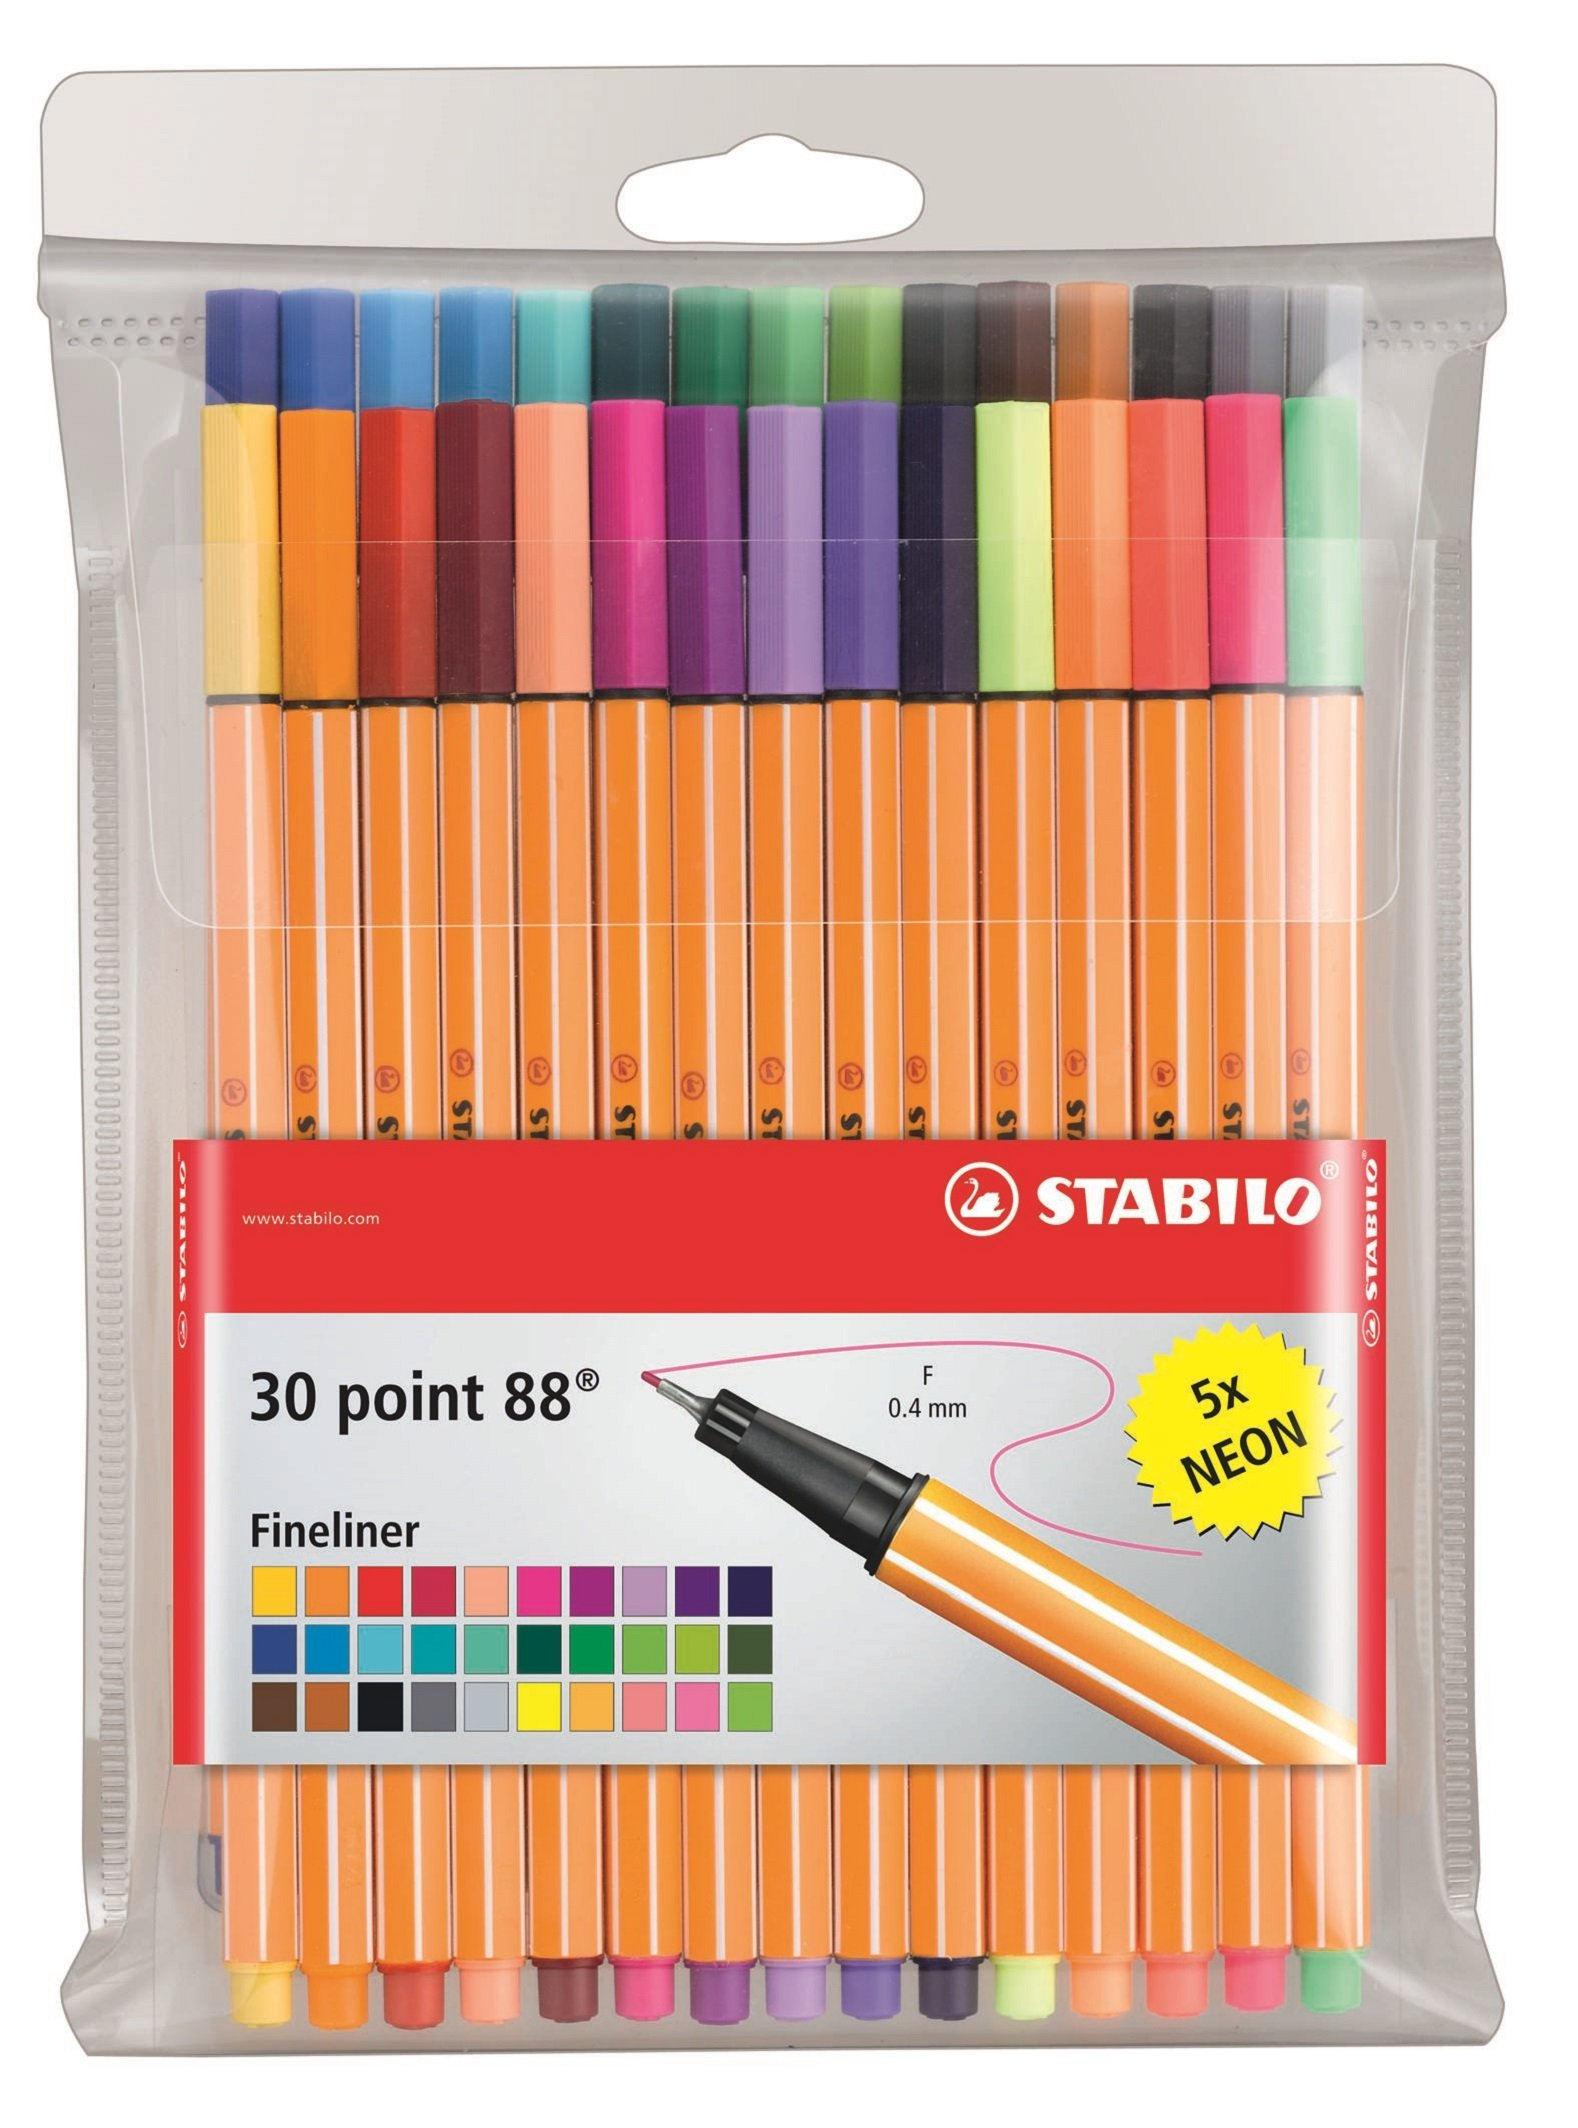 Point 88 Fineliner Pens 0.4m 30 color wallet set by STABILO